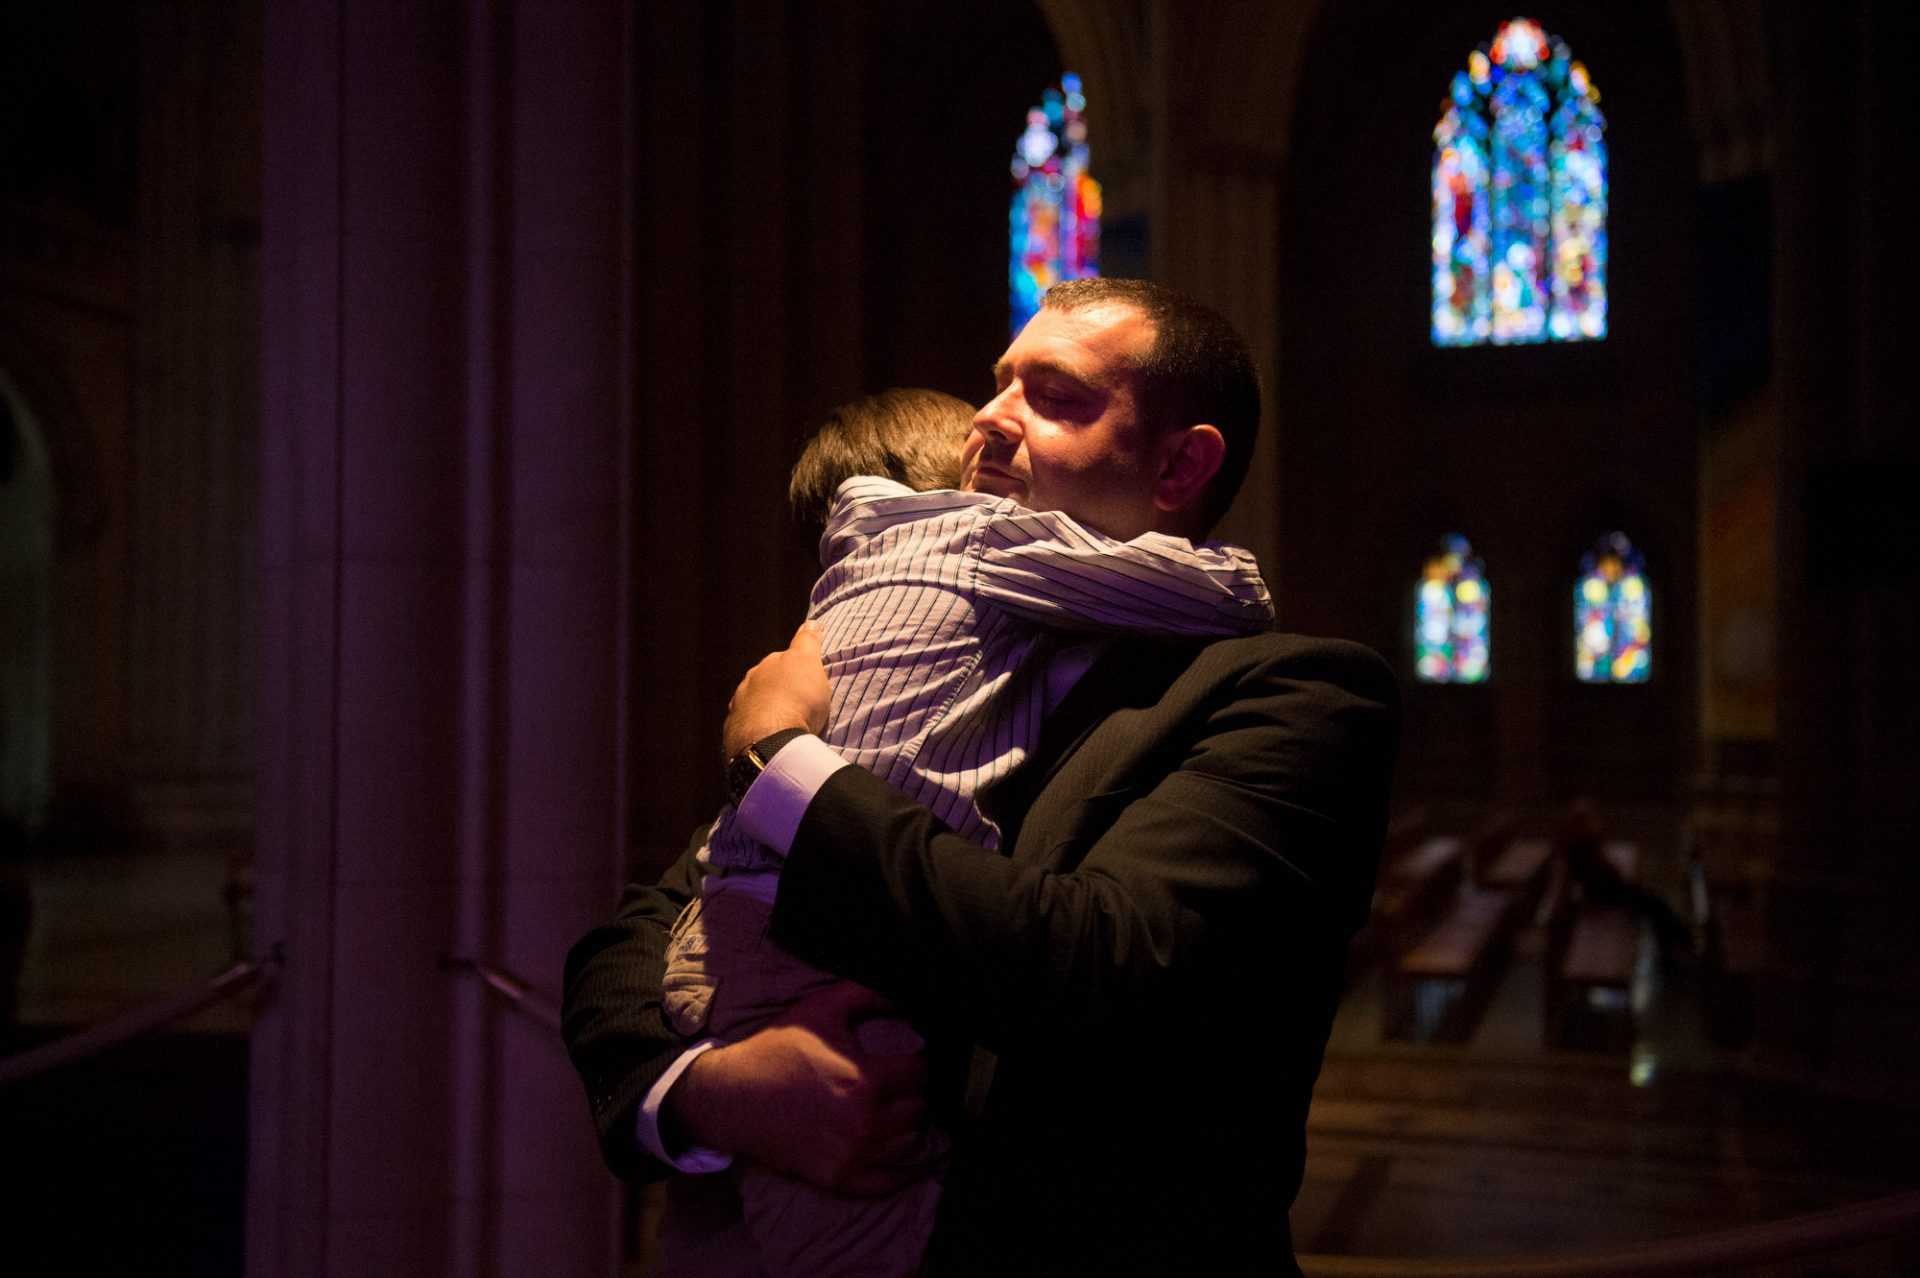 Photo: A father holds his son at the National Cathedral, District of Columbia.